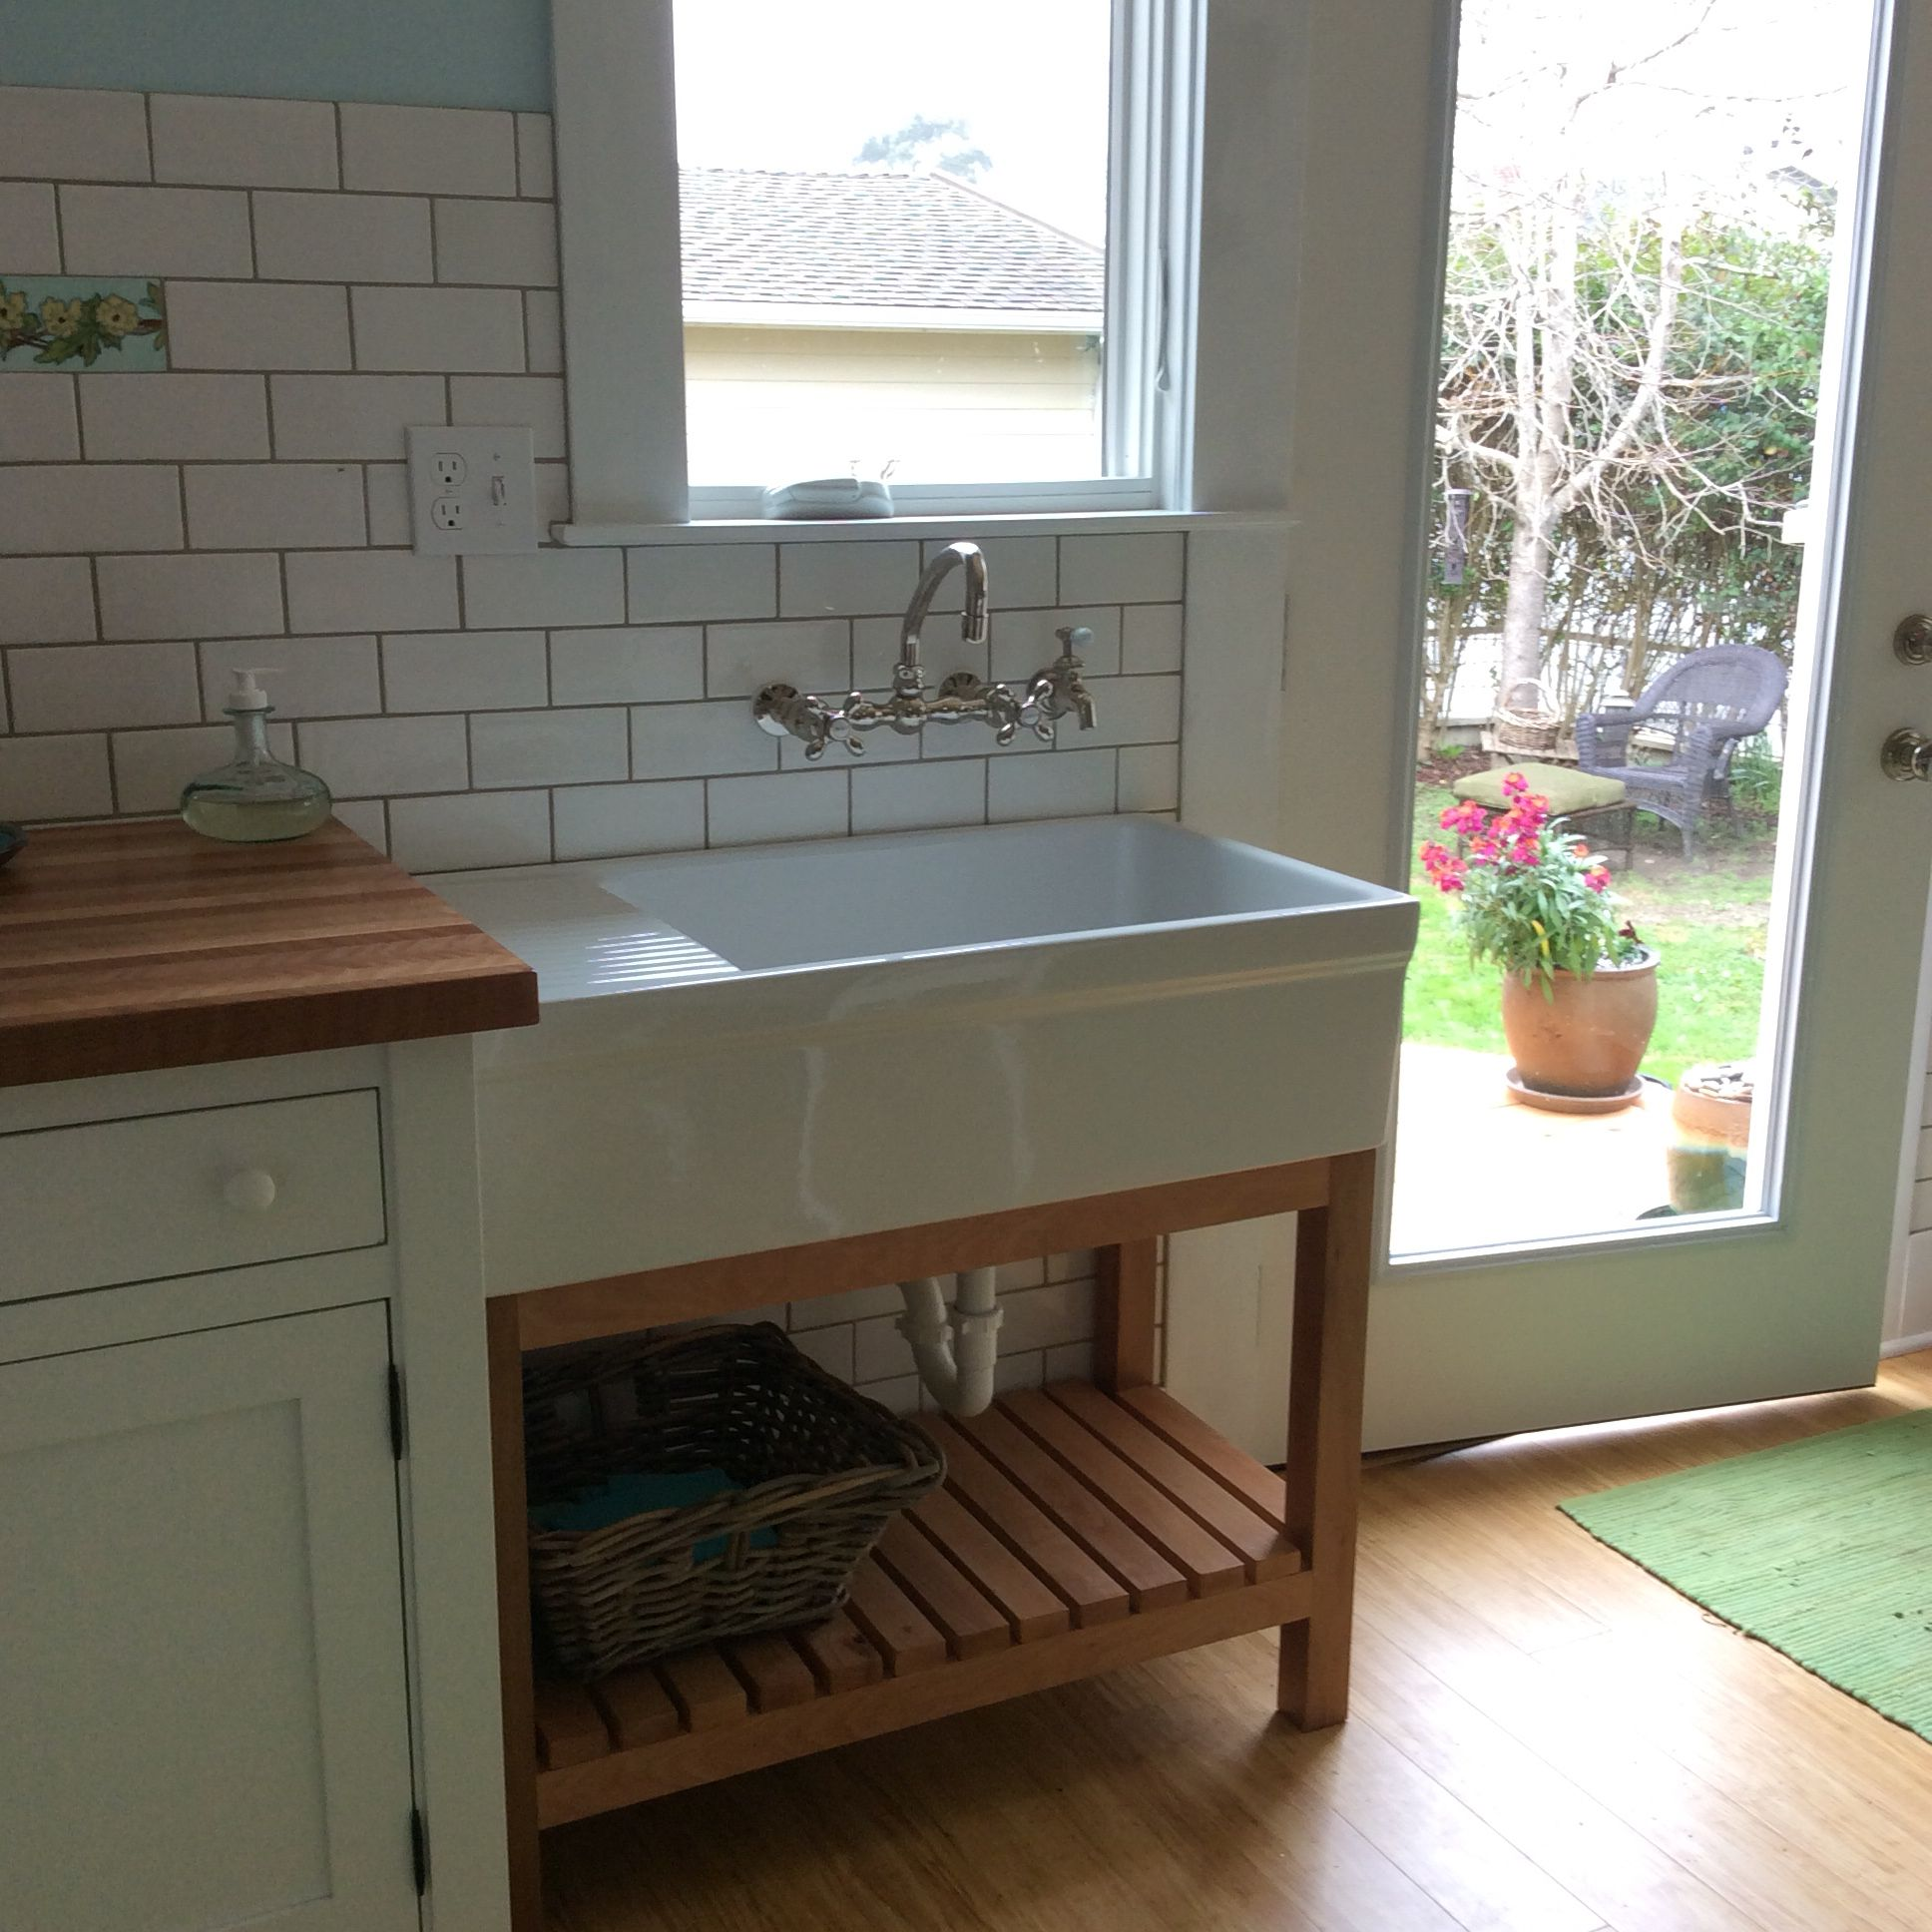 The Kitchen Sink In My Freestanding Unfitted Kitchen A